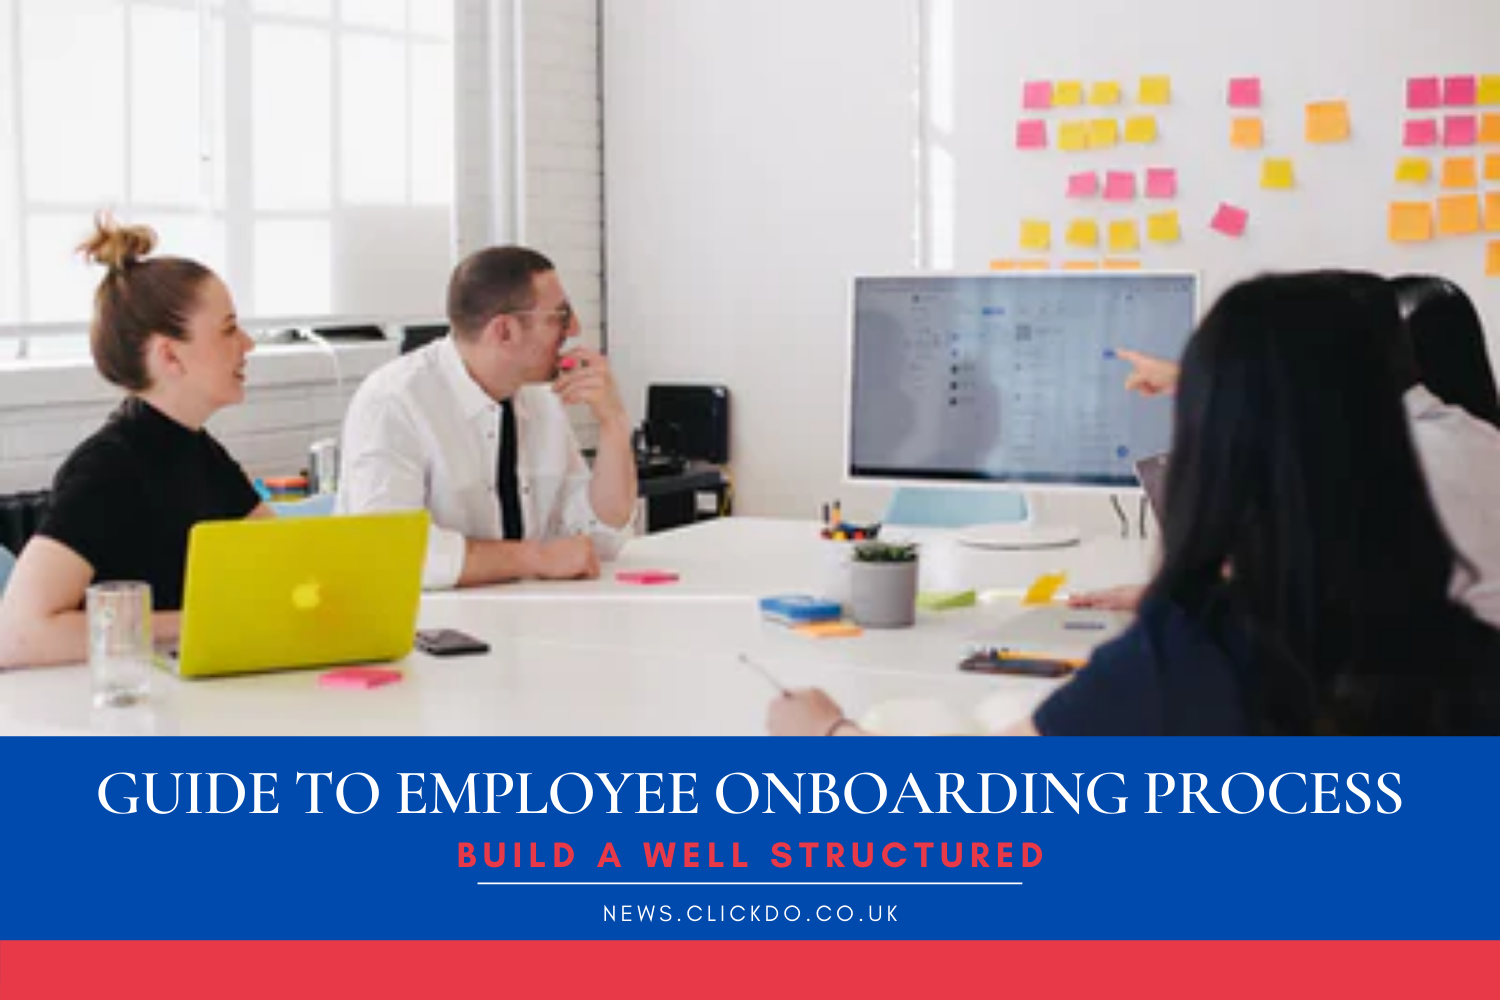 An Essential Guide on How to Build a Well-Structured Onboarding Process